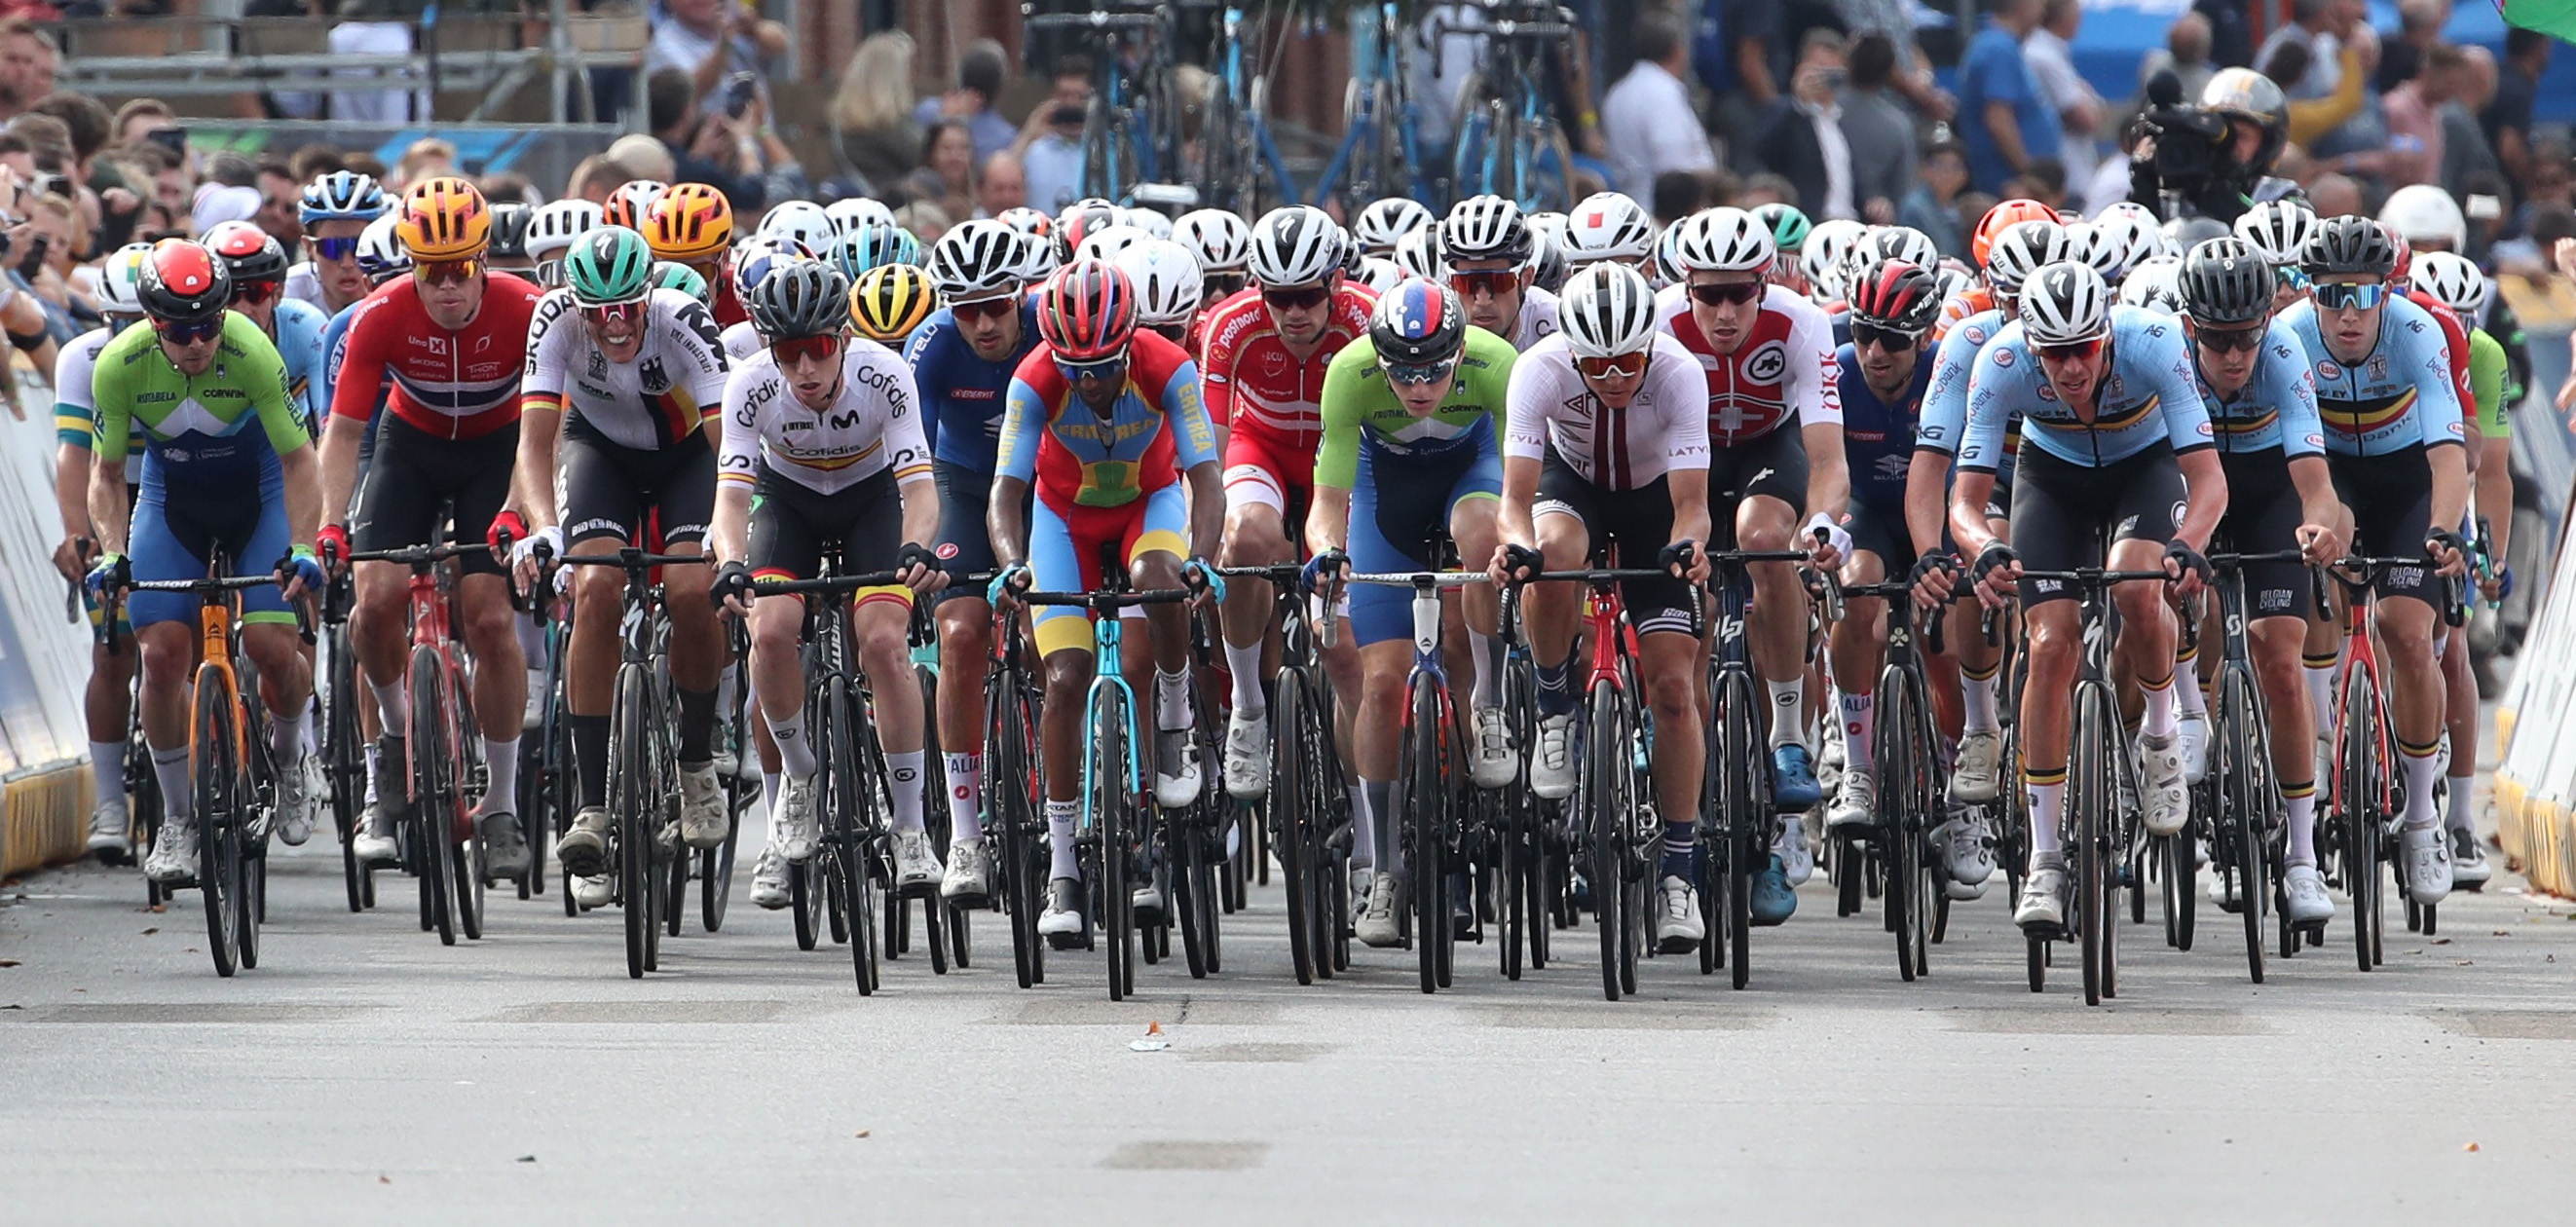 Cycling - UCI Road World Championships - Leuven, Belguim - September 26, 2021 General view of the pack in action during the race REUTERS/Yves Herman